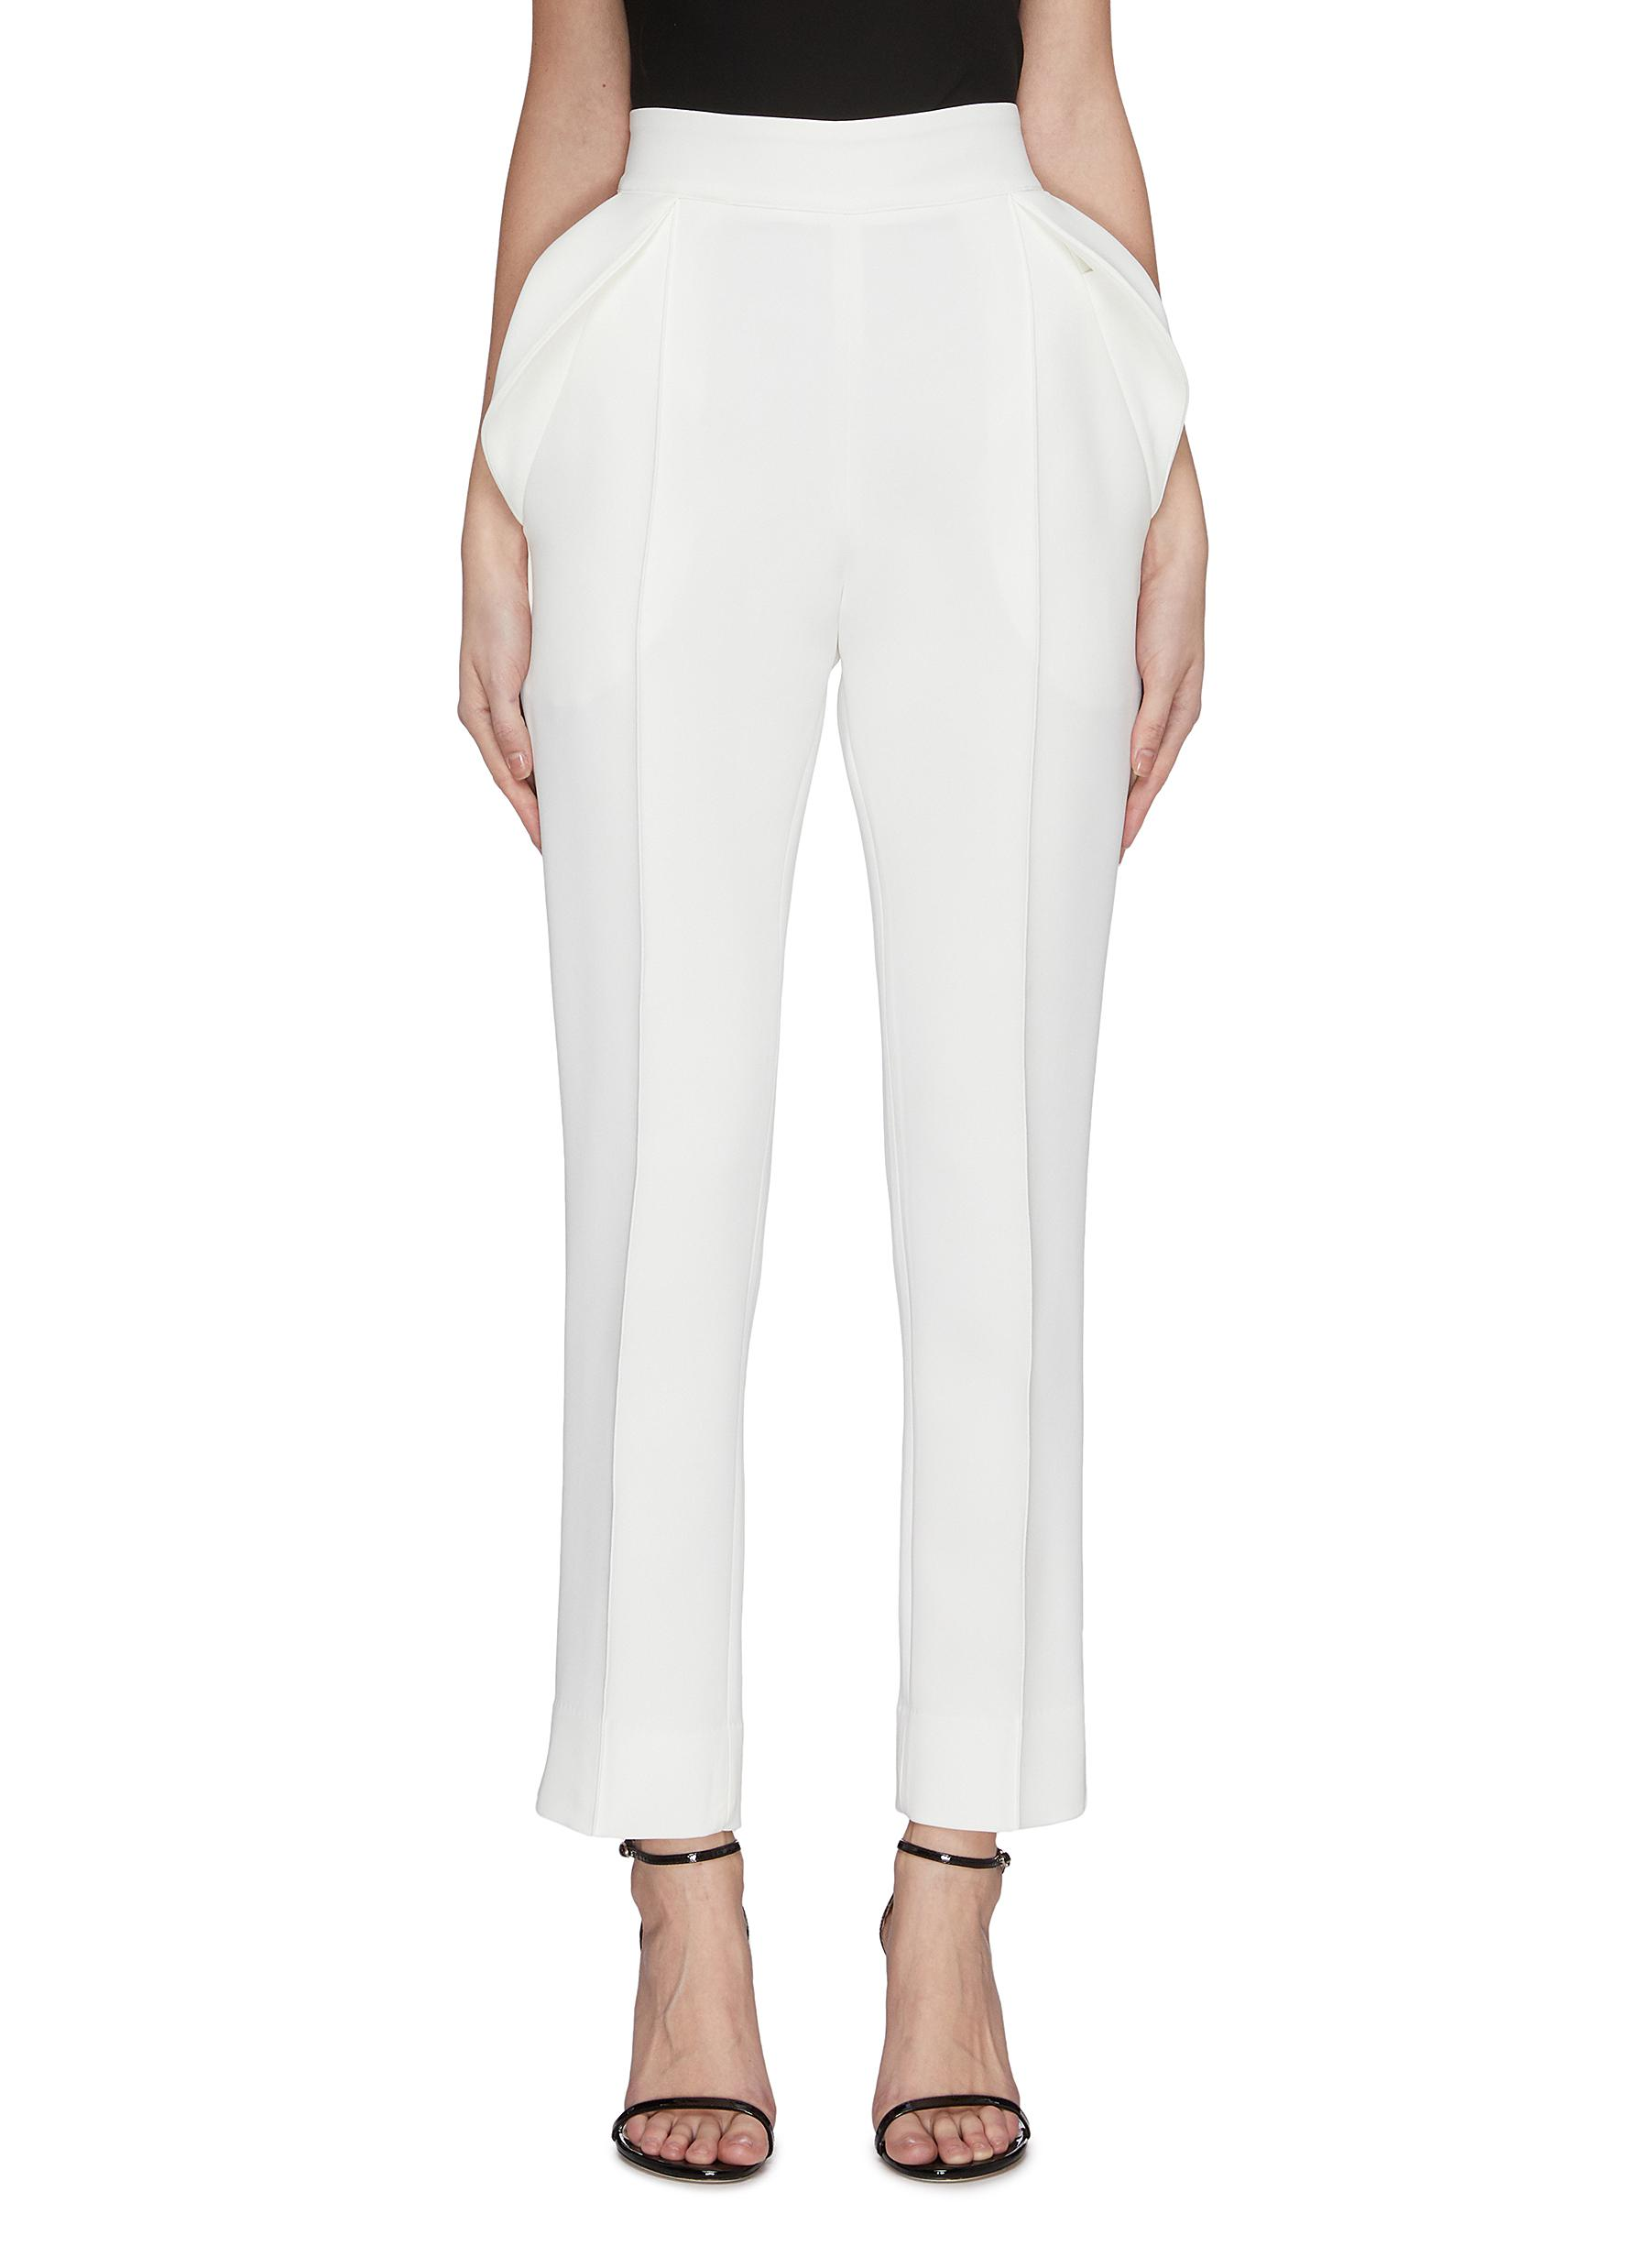 Buy Maticevski Pants & Shorts 'Prolific' ruffle detail suiting pants